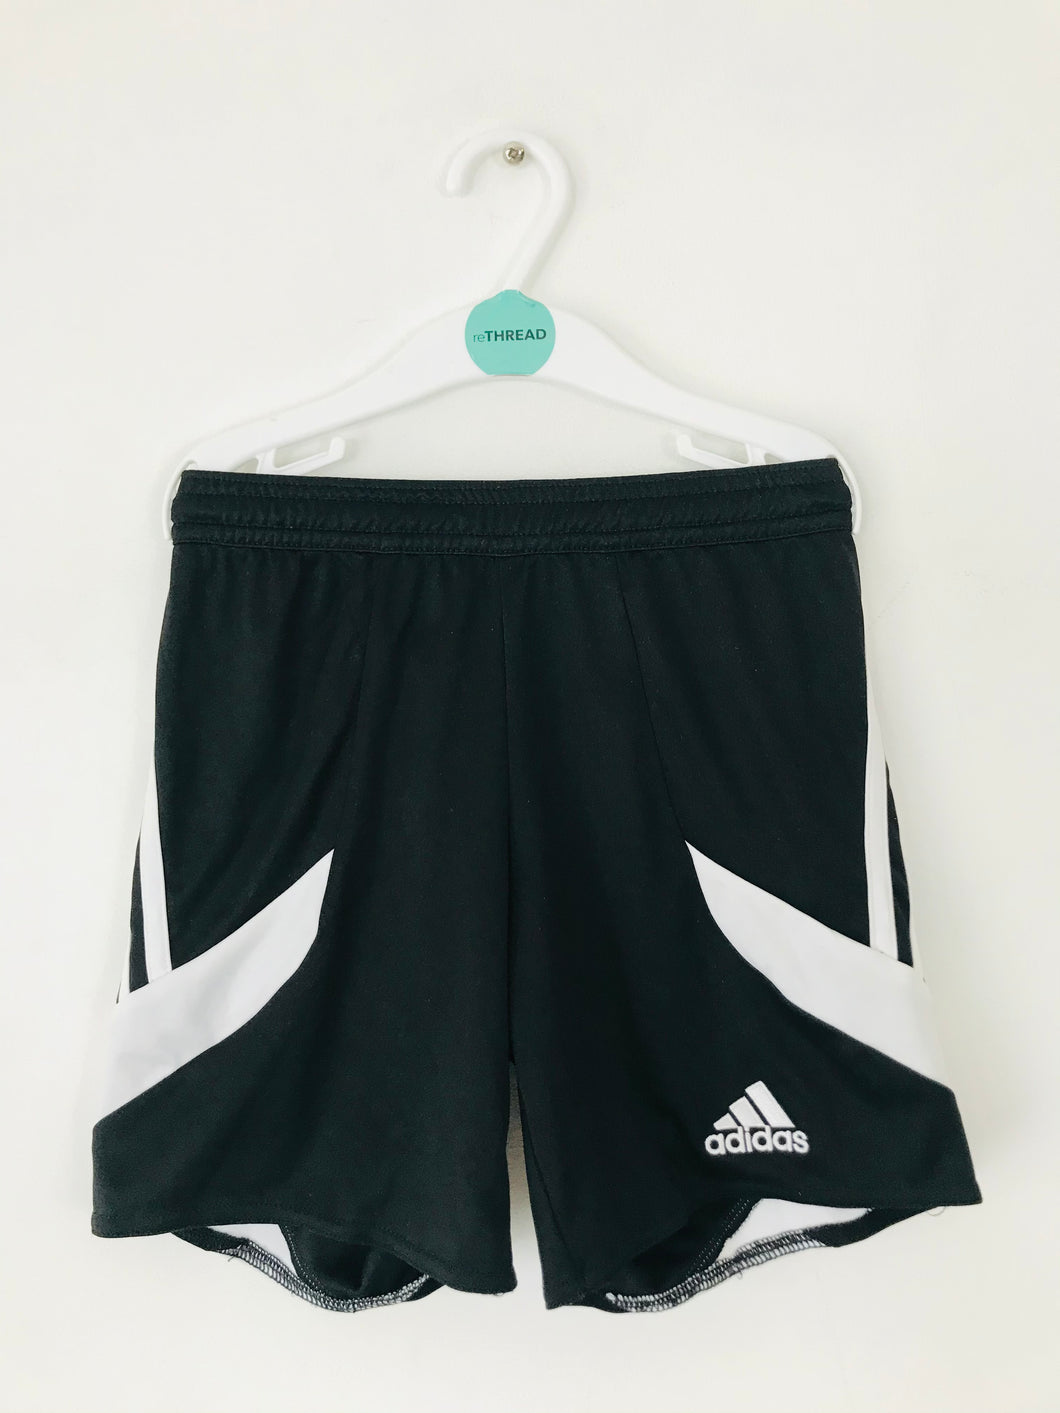 Adidas Youth Climalite Sport Football Shorts | YXS | Black